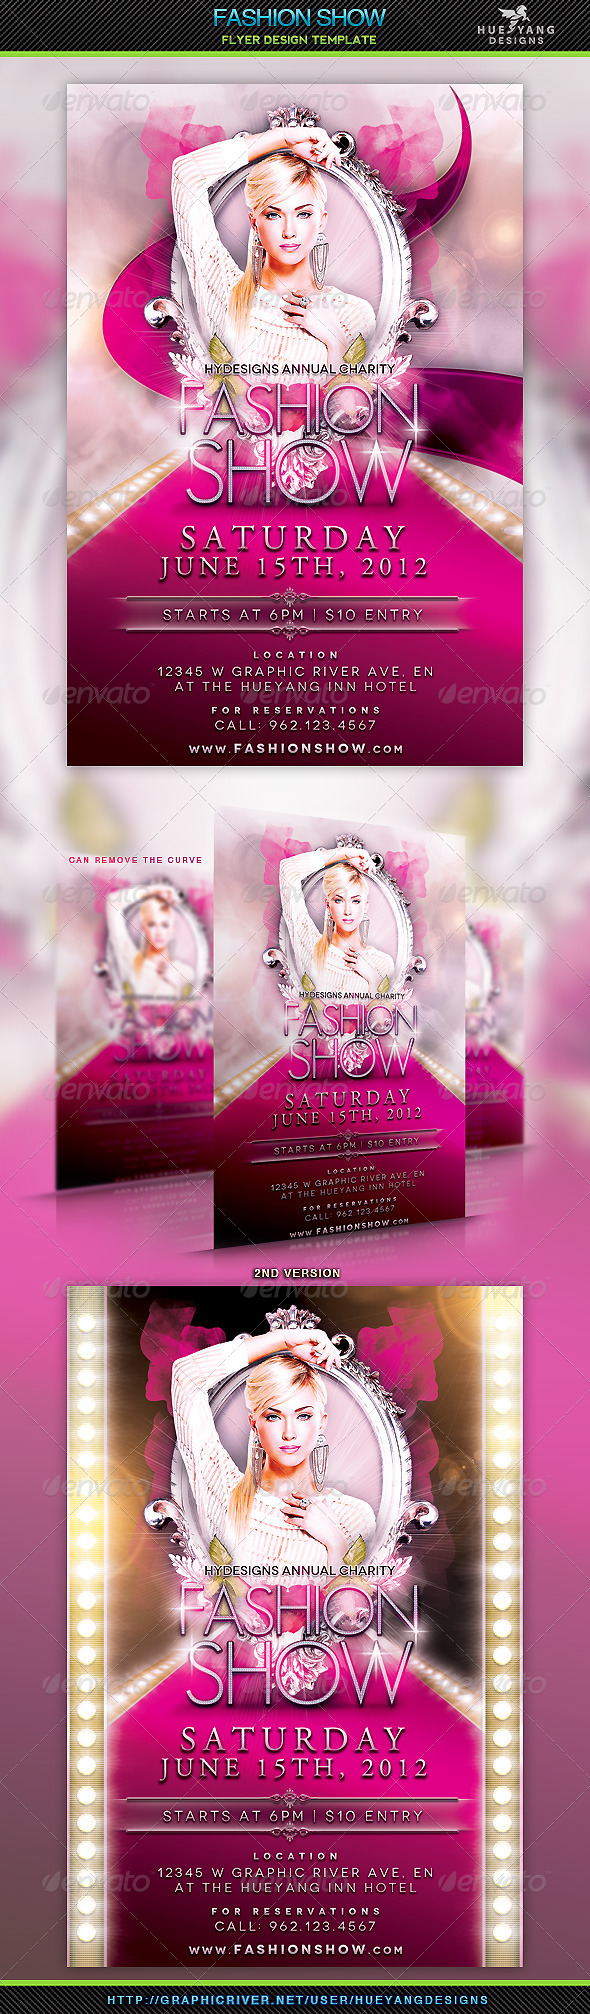 Fashion Show Flyer Template - Miscellaneous Events